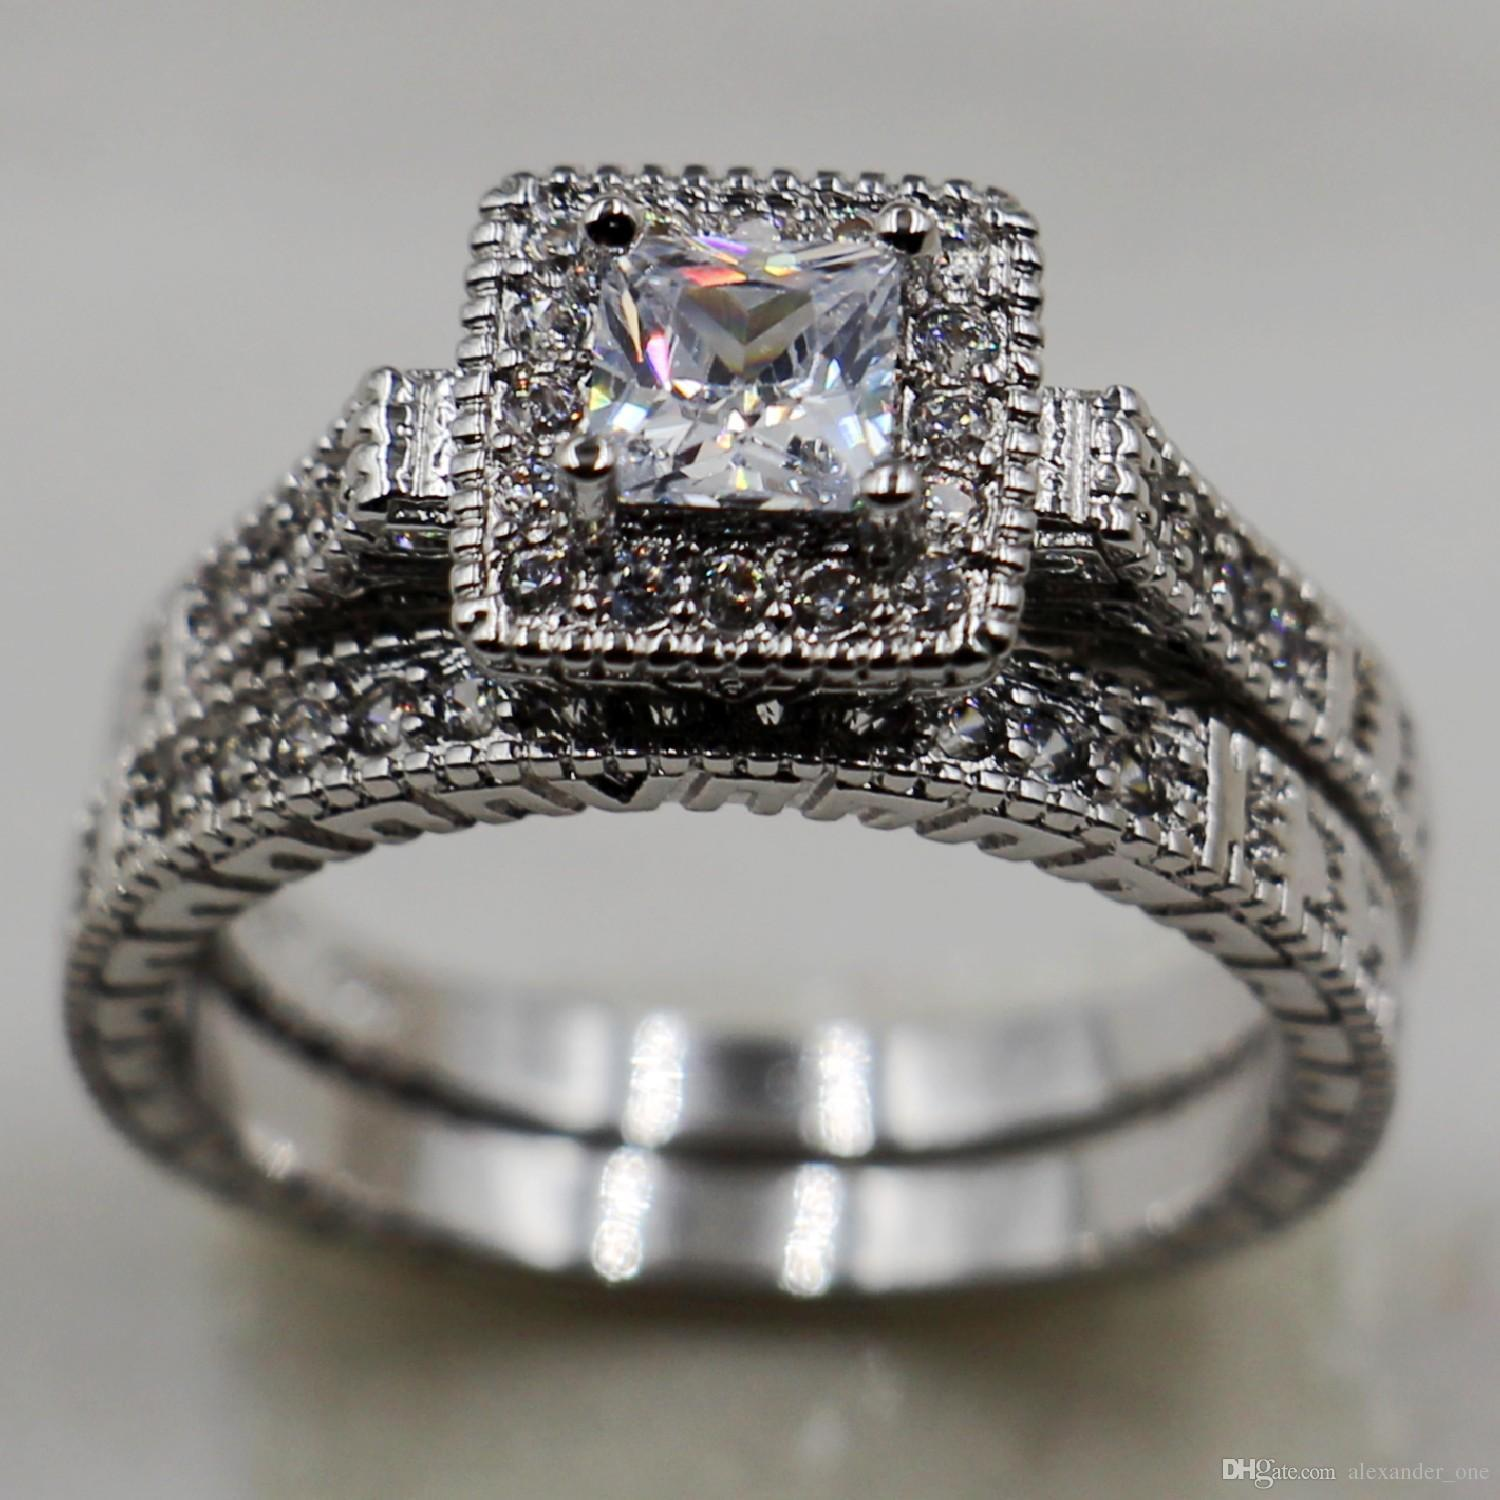 70bb106b0b6 2019 Size 5,6,7,8,9,10 Vintage Brand Jewelry Women'S 10KT White Gold Filled  White Sapphire CZ Crystal Stone Wedding Couple Ring Set From Uppoint, ...